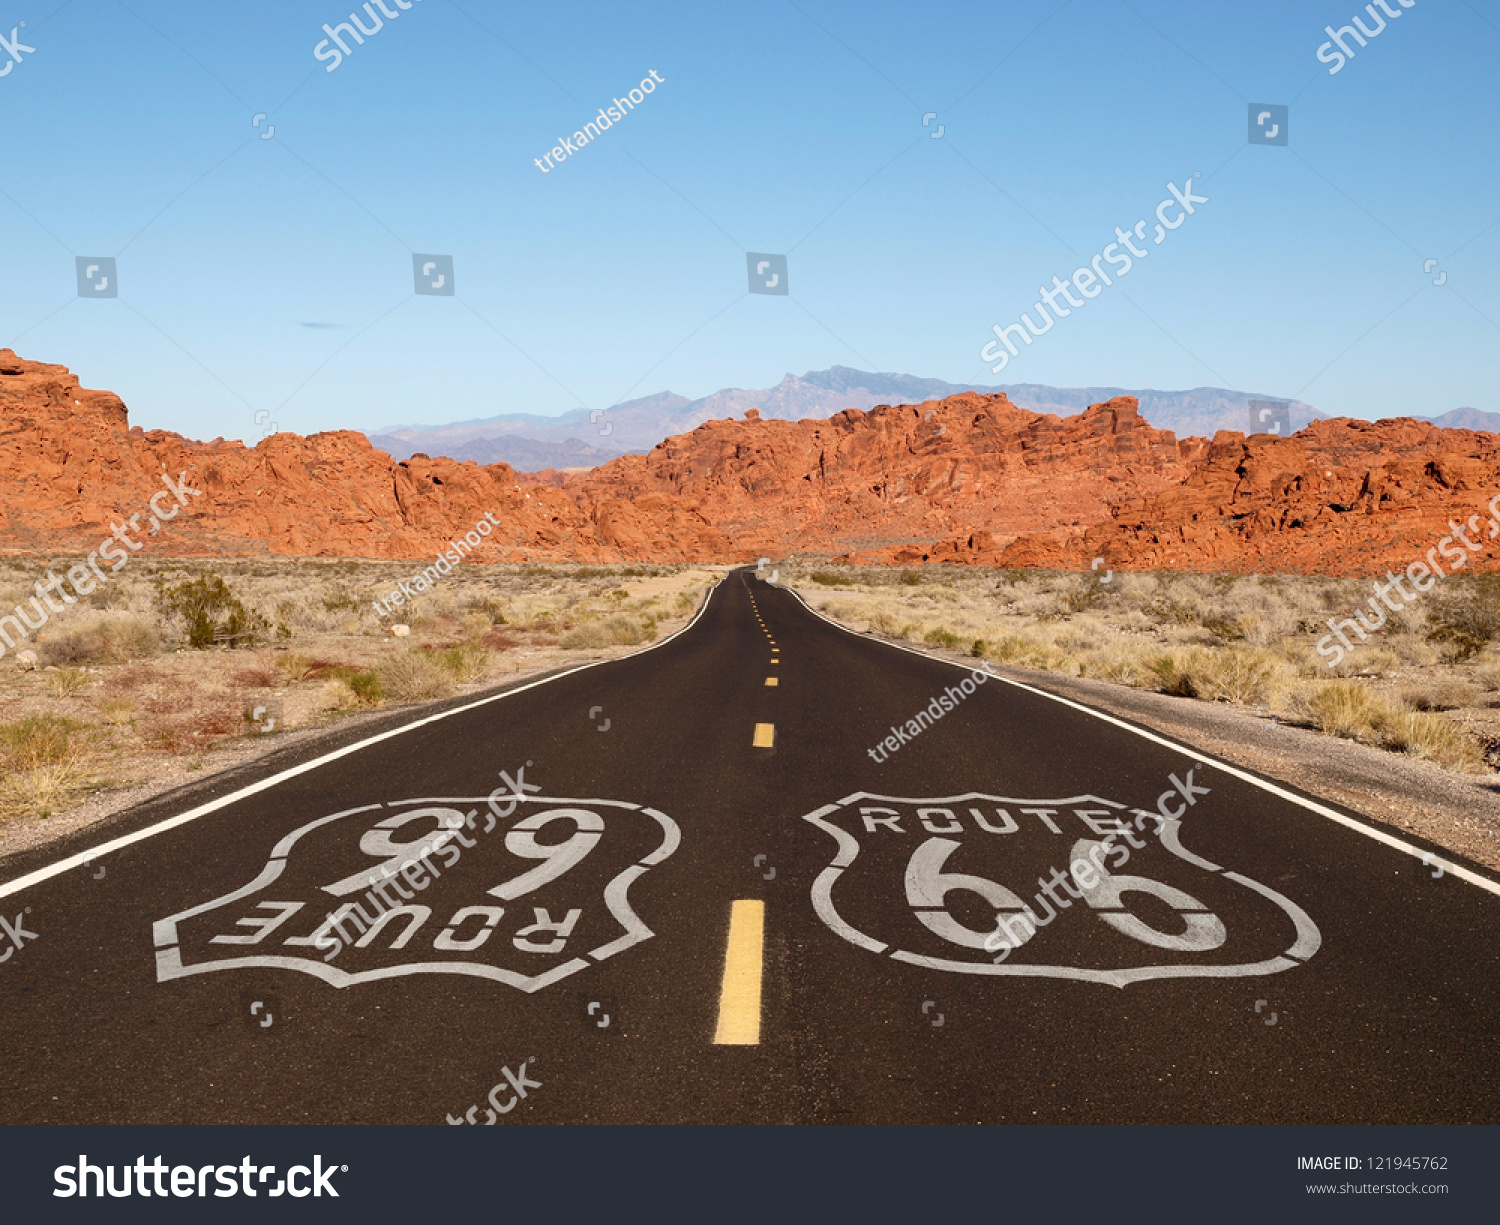 Route 66 pavement sign with Mojave desert red rock mountains. #121945762